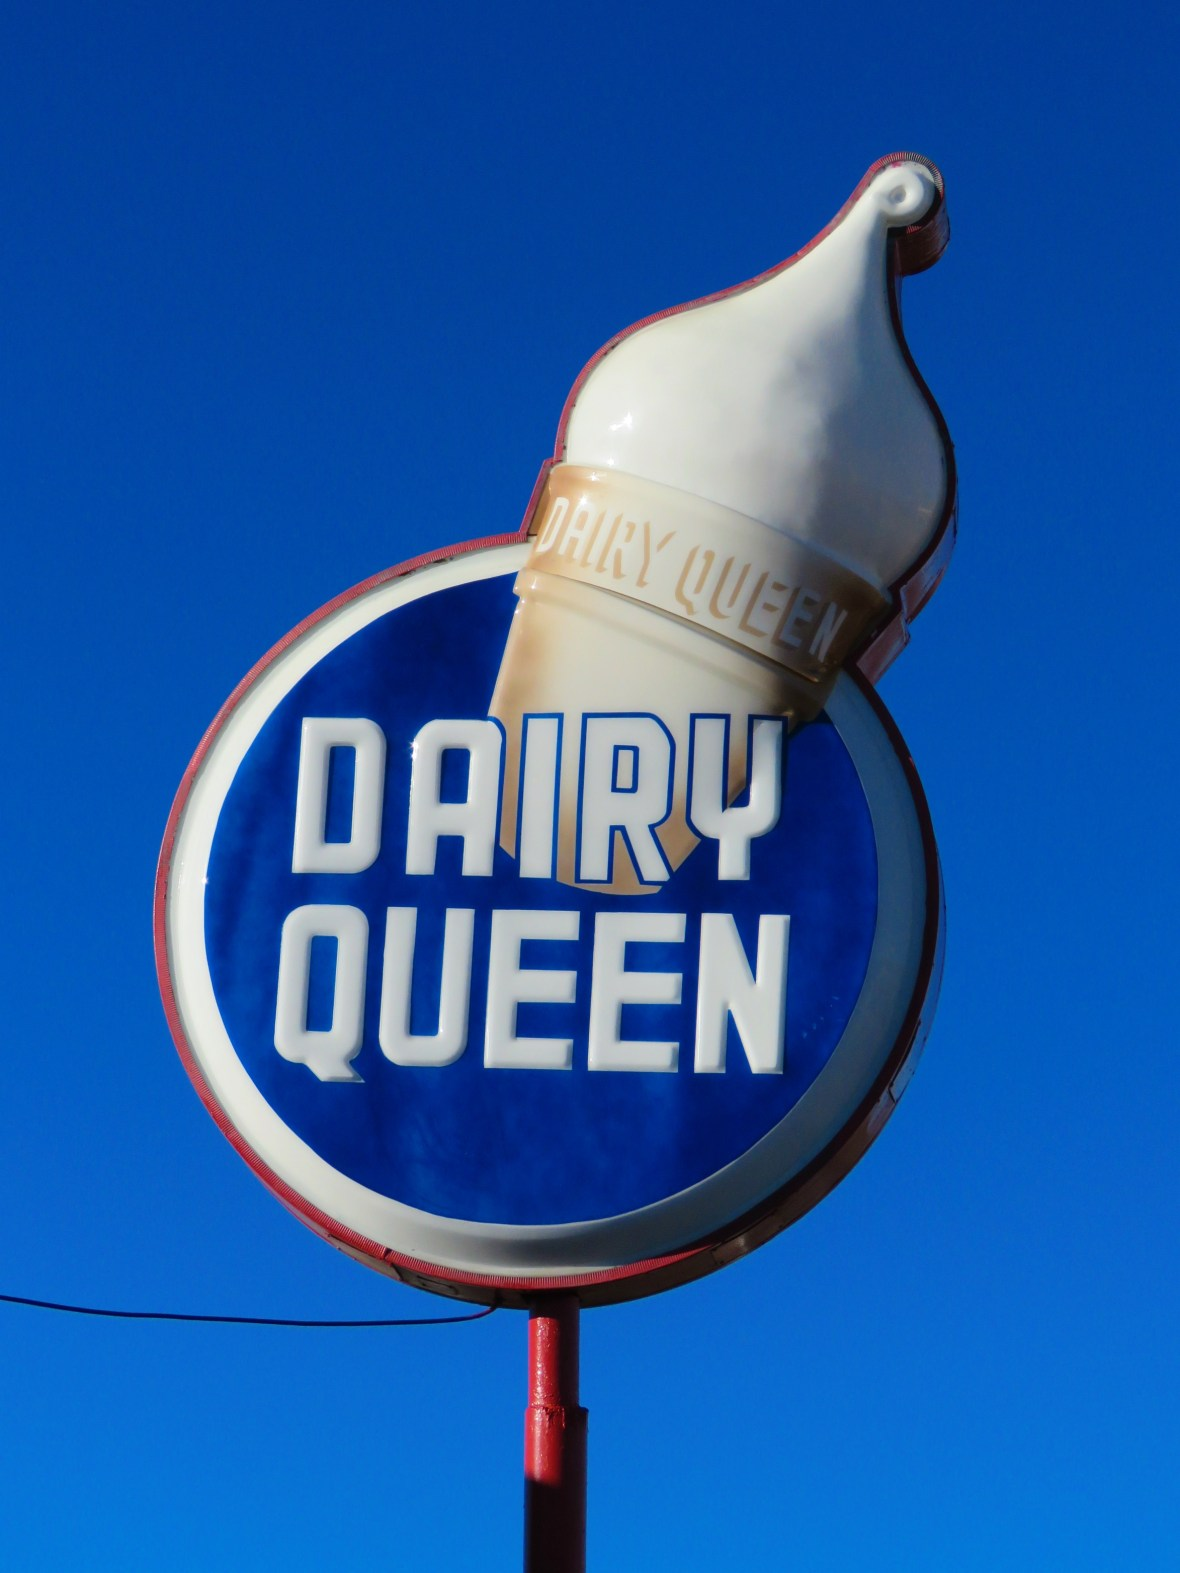 Dairy Queen - 603 Historic Route 66, Williams, Arizona U.S.A. - November 9, 2015